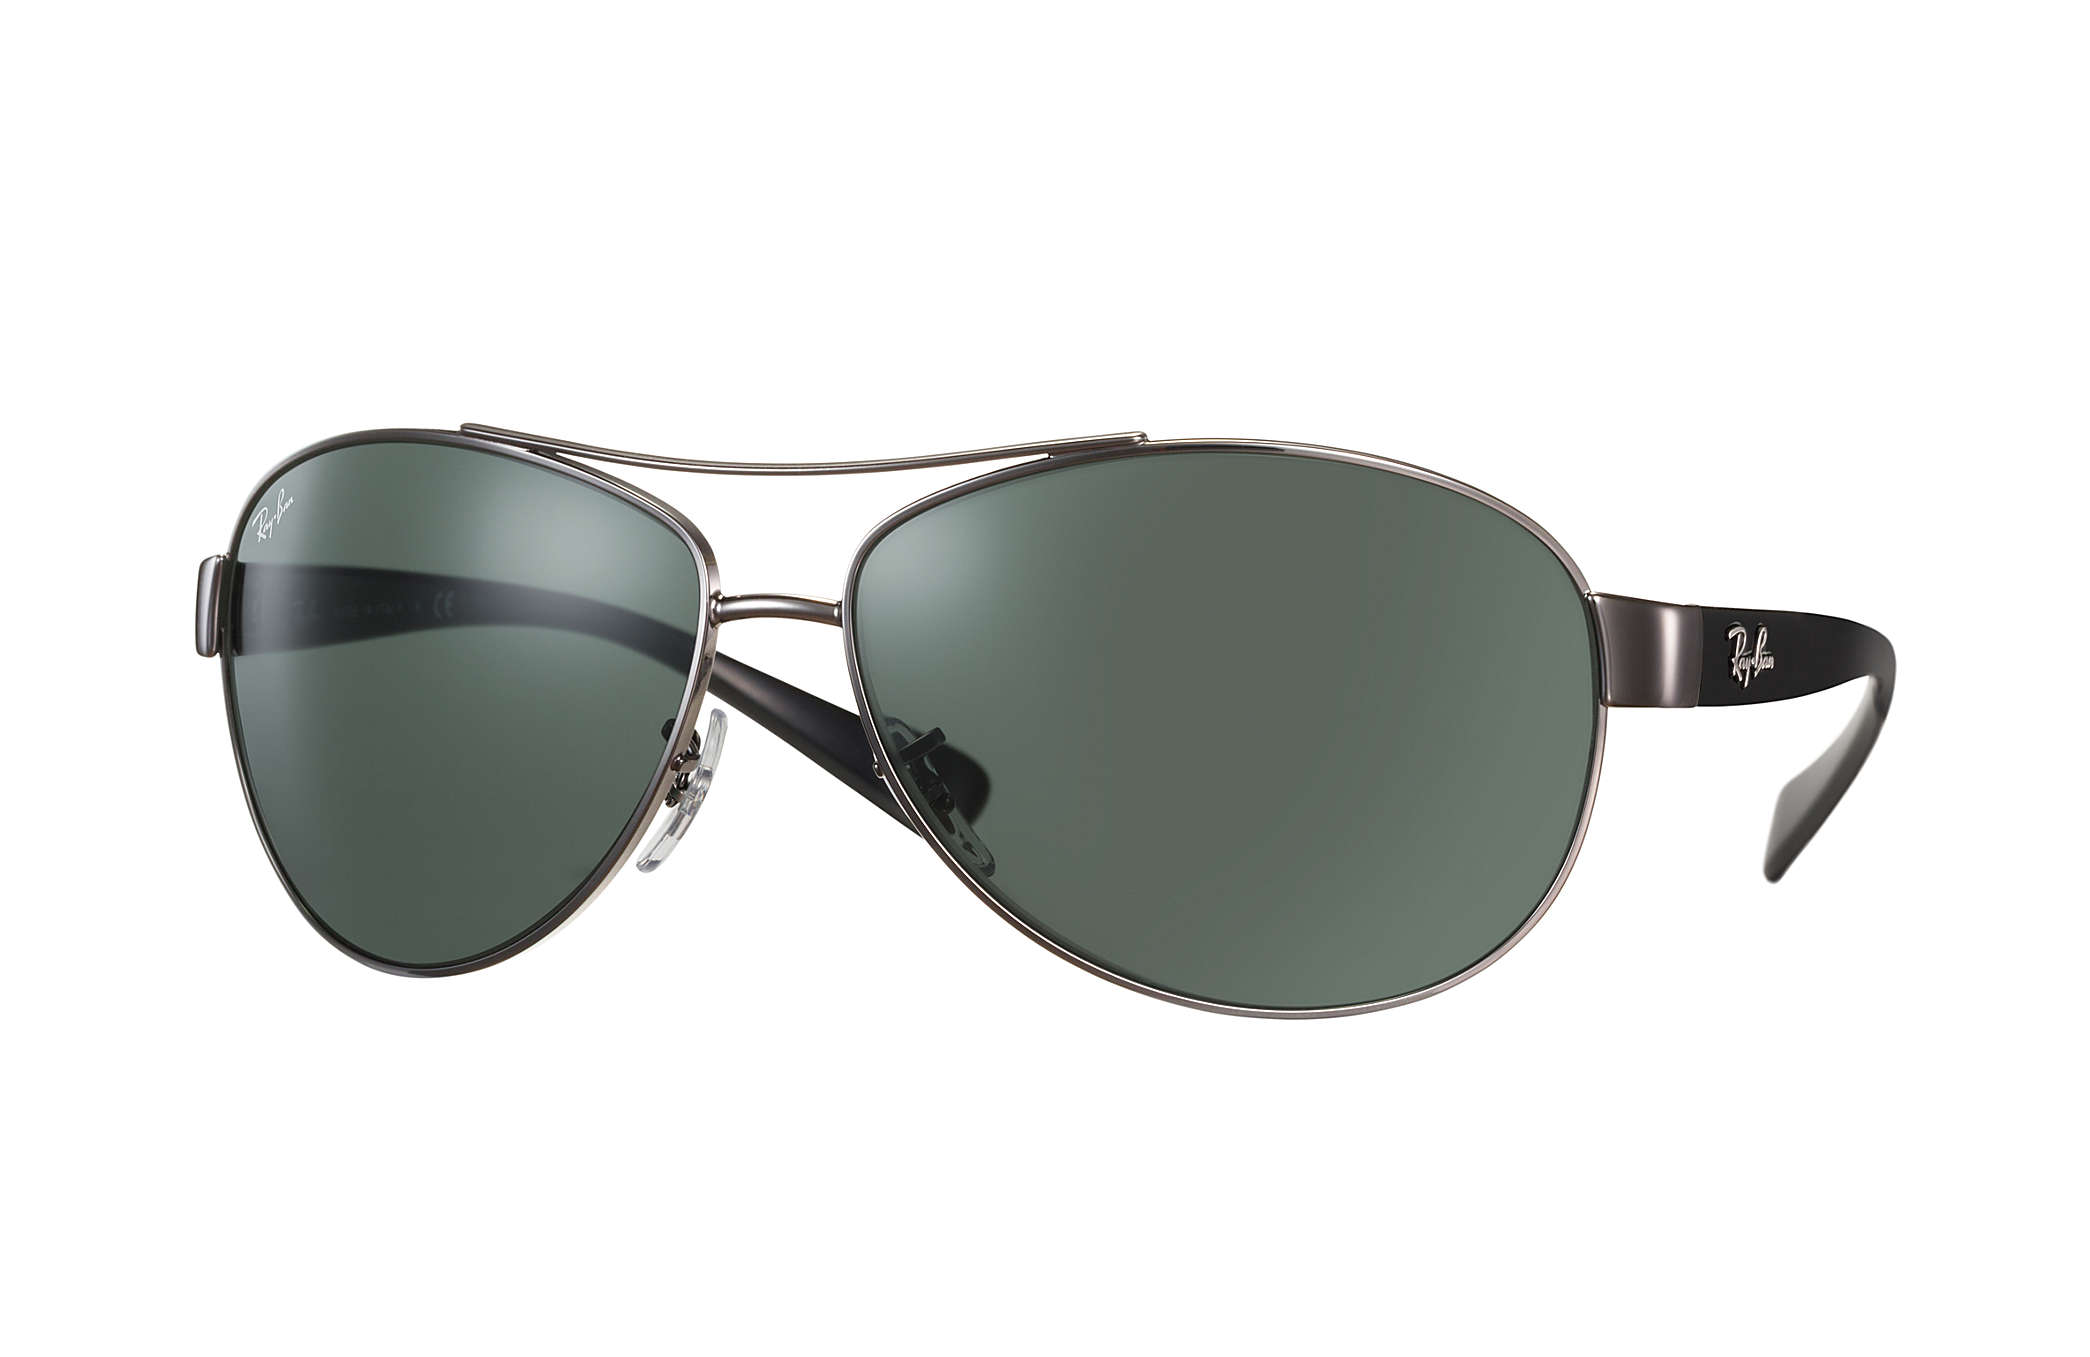 34c07c5d63ae8 Details about New Ray Ban RB3386-004 71-67 Gunmetal   Green 67mm Sunglasses